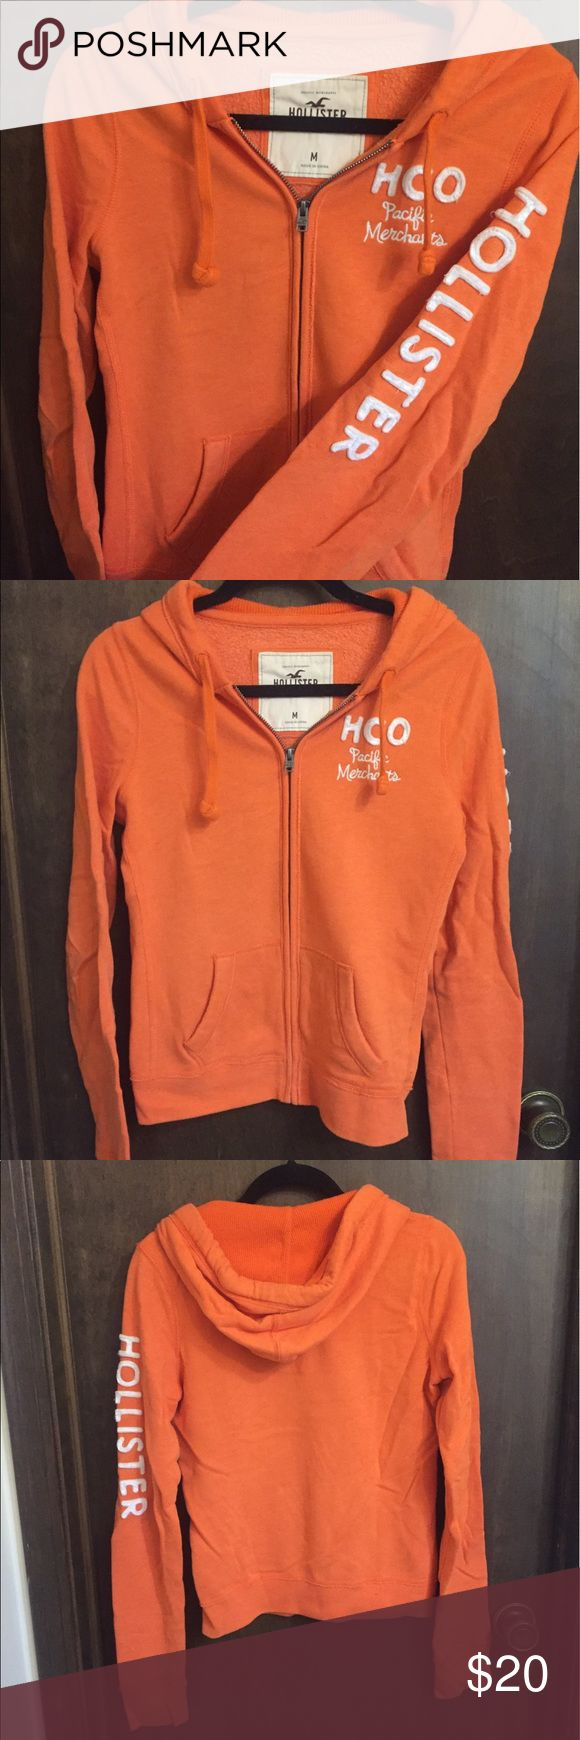 Orange hollister zip up hooded sweatshirt Women's Hollister sweatshirt, zip up with a hood. Size M, hollister written on left arm and near chest. No visible signs of wear. Willing to negotiate! Hollister Tops Sweatshirts & Hoodies